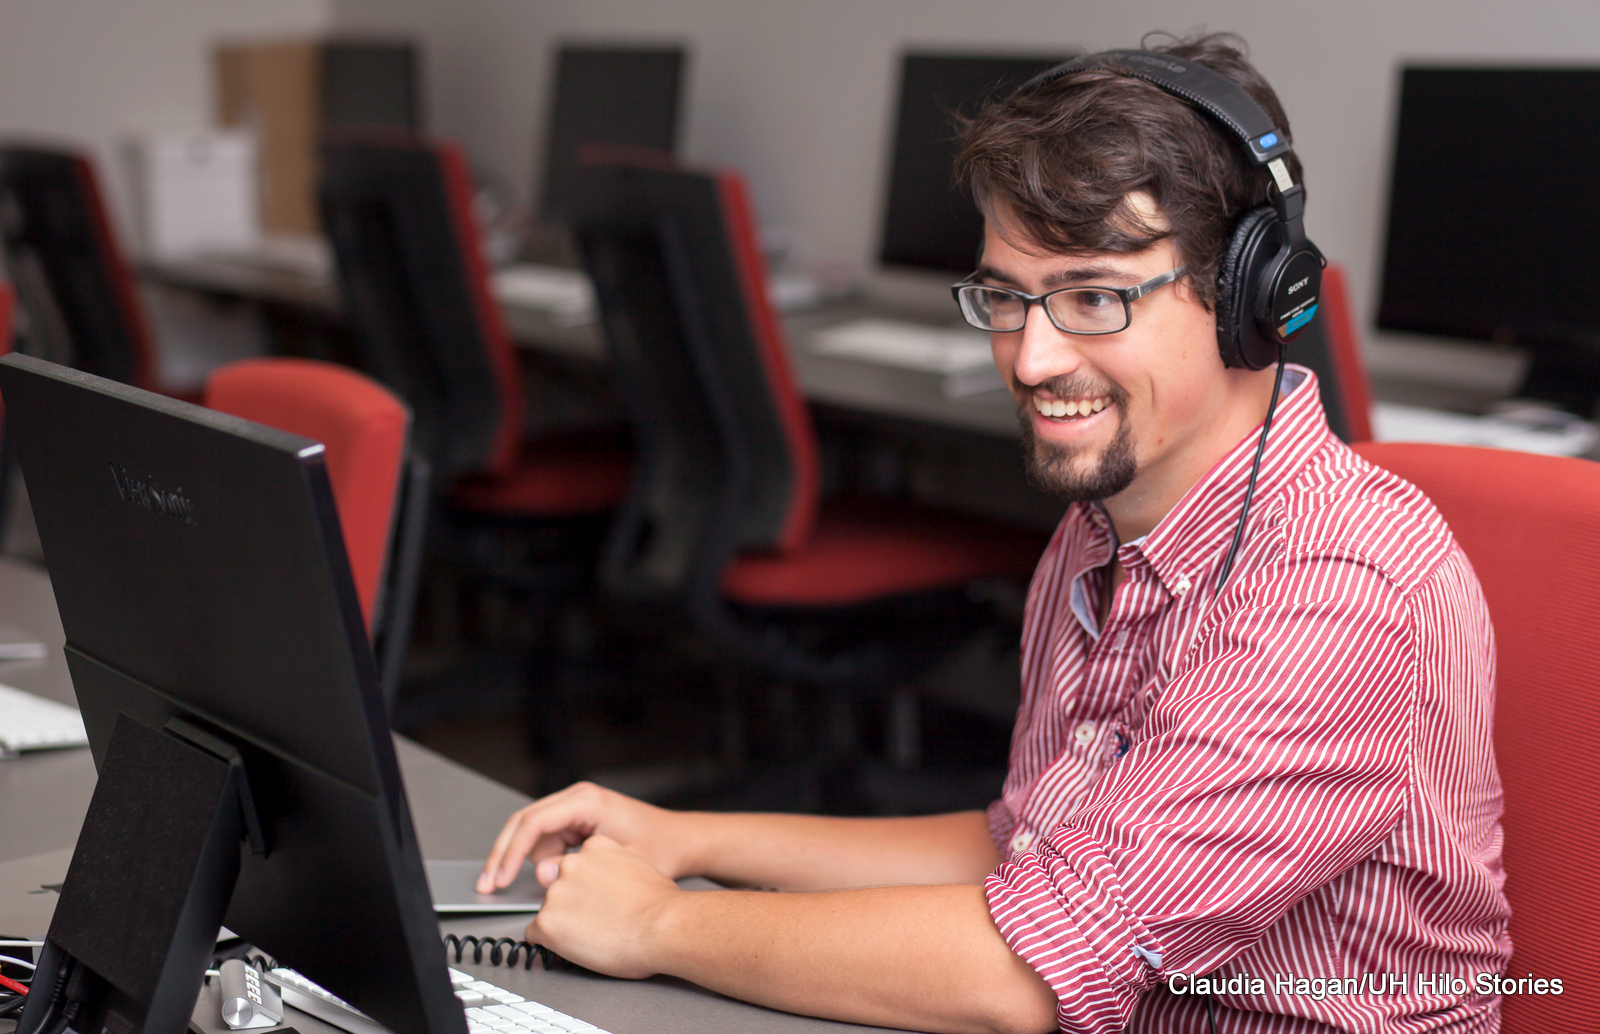 Justin Kalaniali'i Stoleson at computer with headphones on.